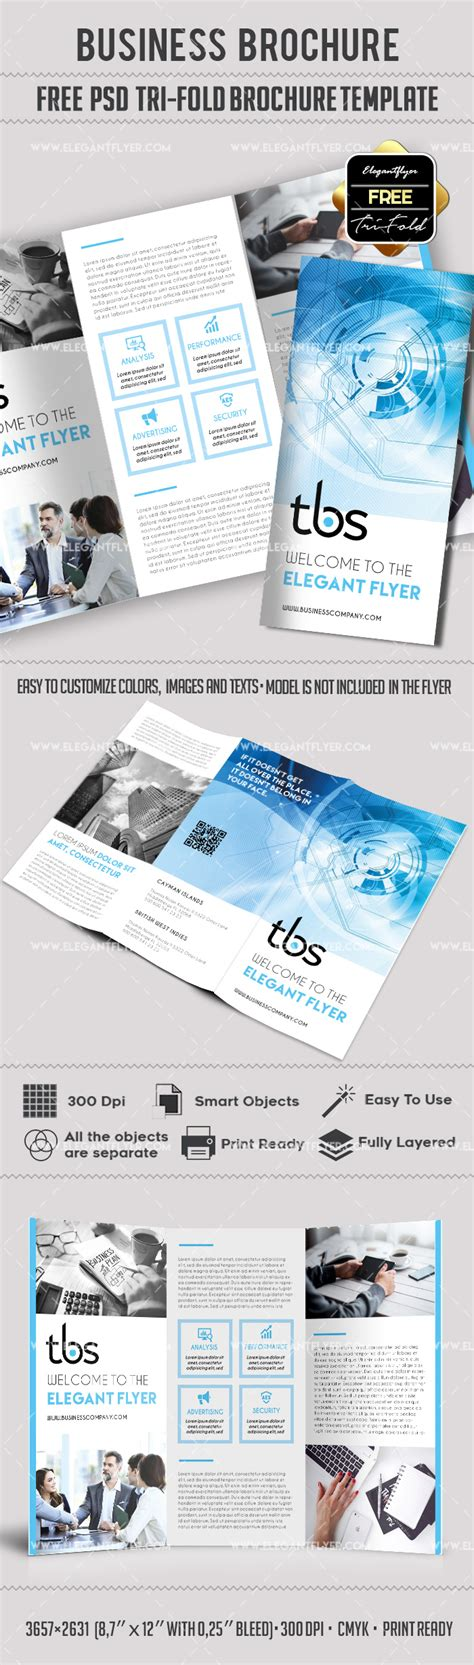 Tri Fold Brochure Templates Free By Elegantflyer Professional Free Tri Fold Brochure Template By Elegantflyer